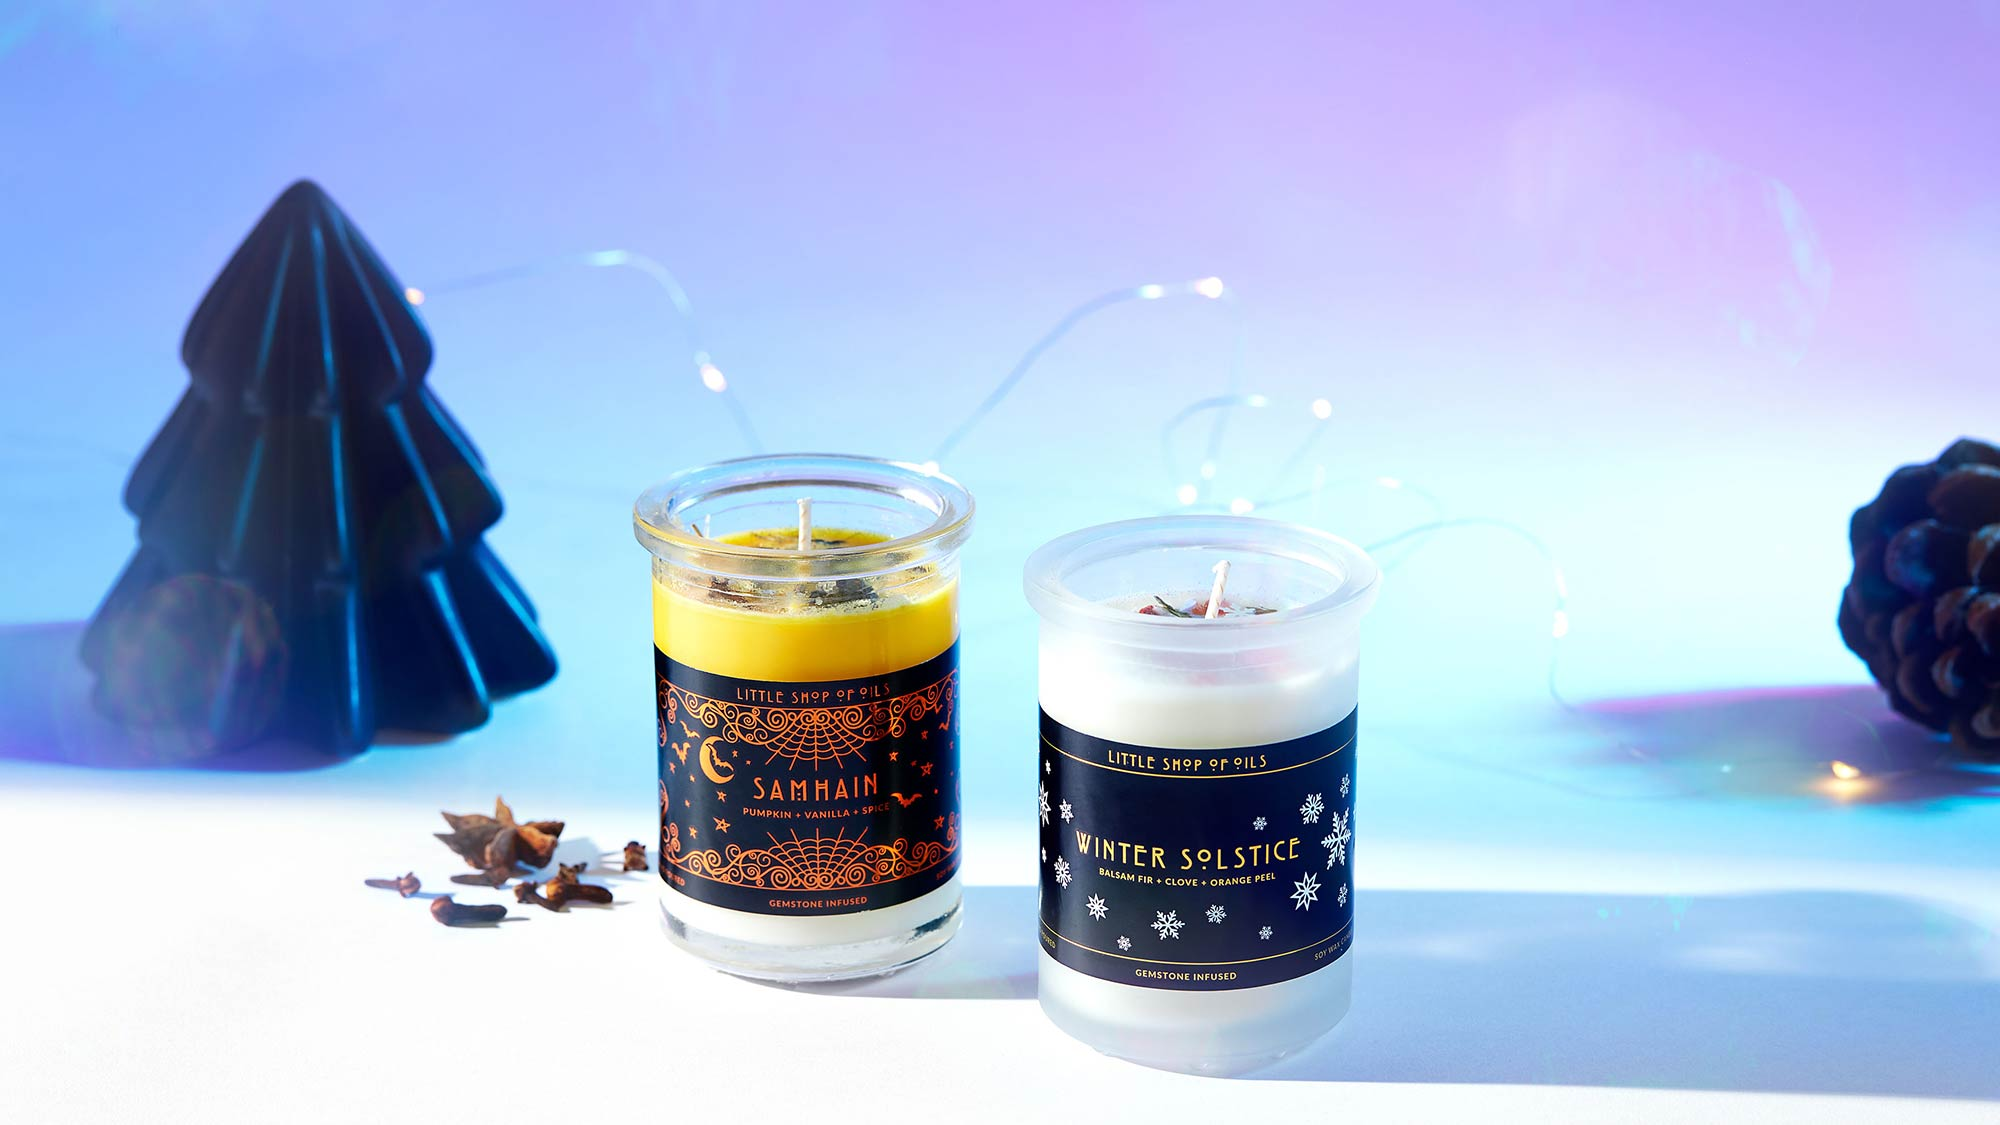 little shop of oils holiday candles